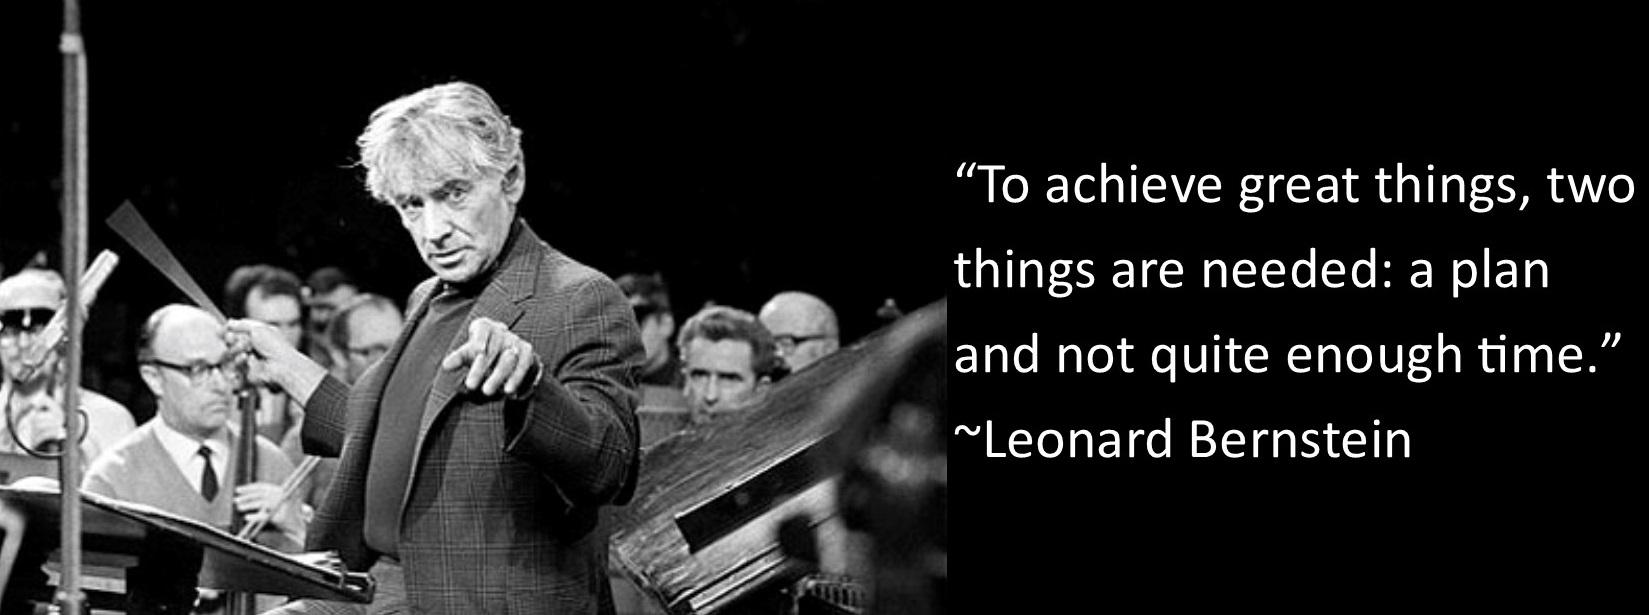 """""""To achieve great things, two things are needed: a plan and not quite enough time."""" ~Leonard Bernstein [1650 x 615]"""